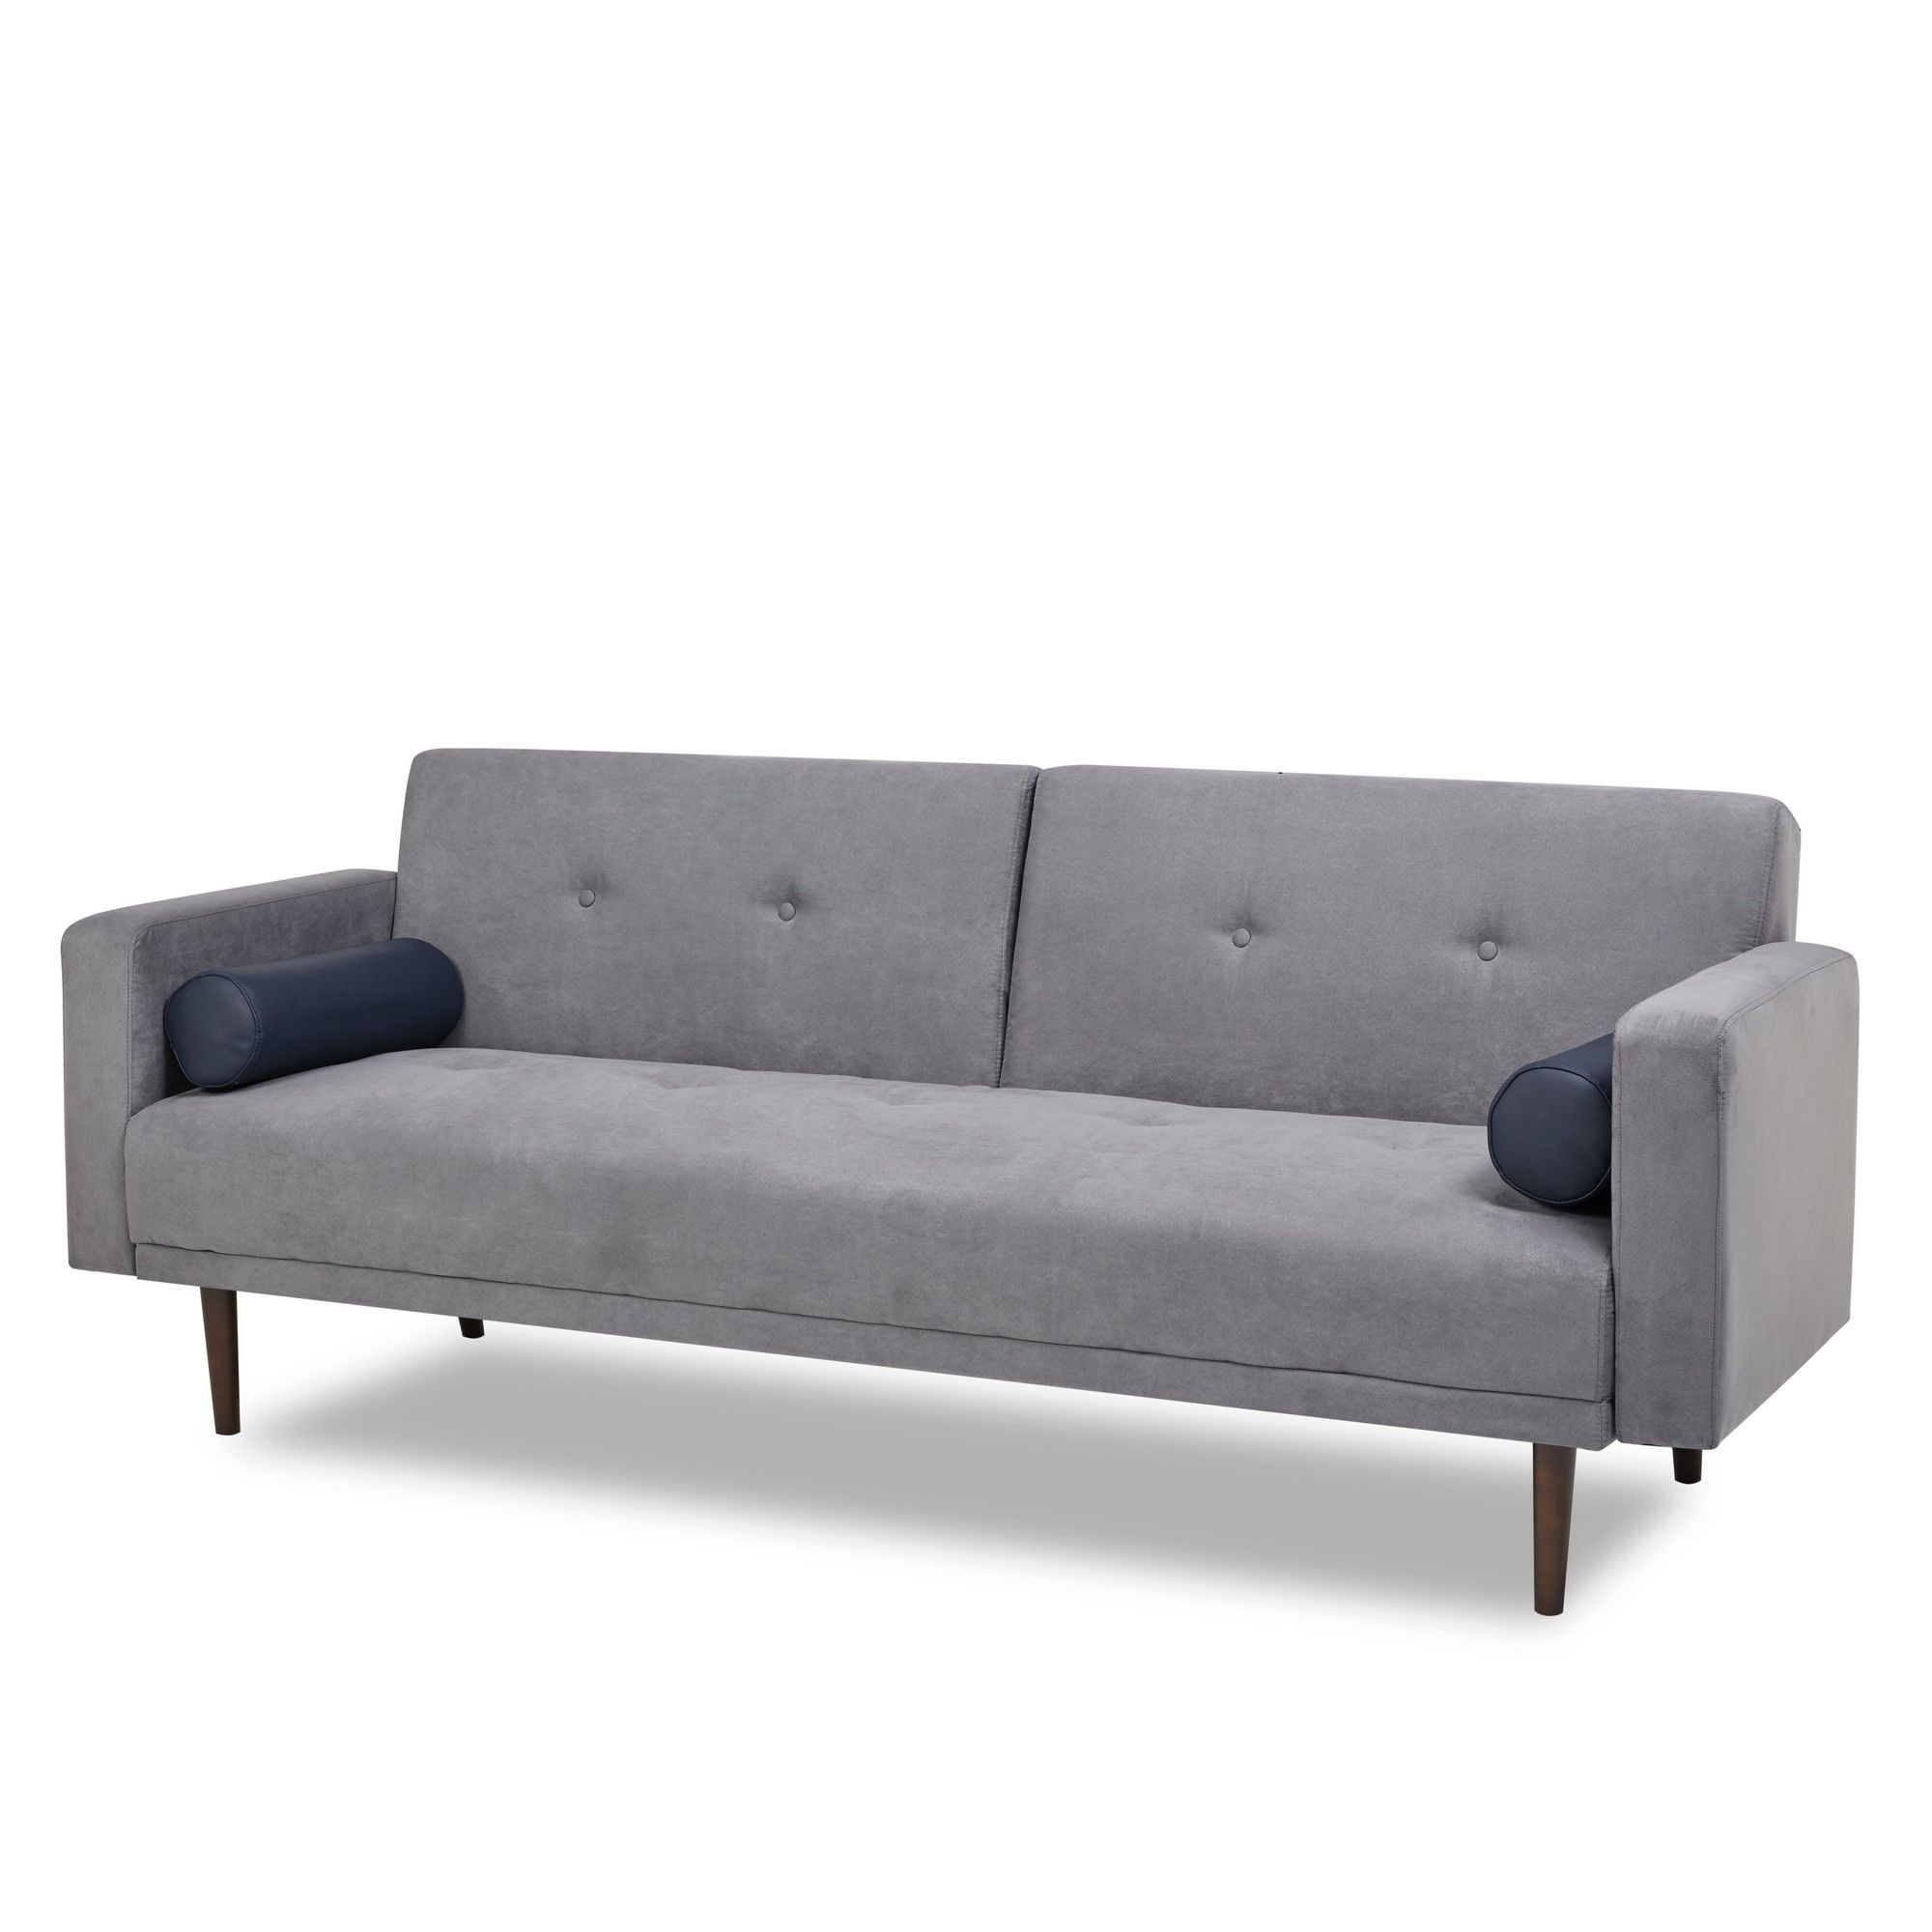 Yulganna 3 Seater Clic Clac Sofa Bed Sofa 4 Seater Sofa Bed Comfortable Sofa